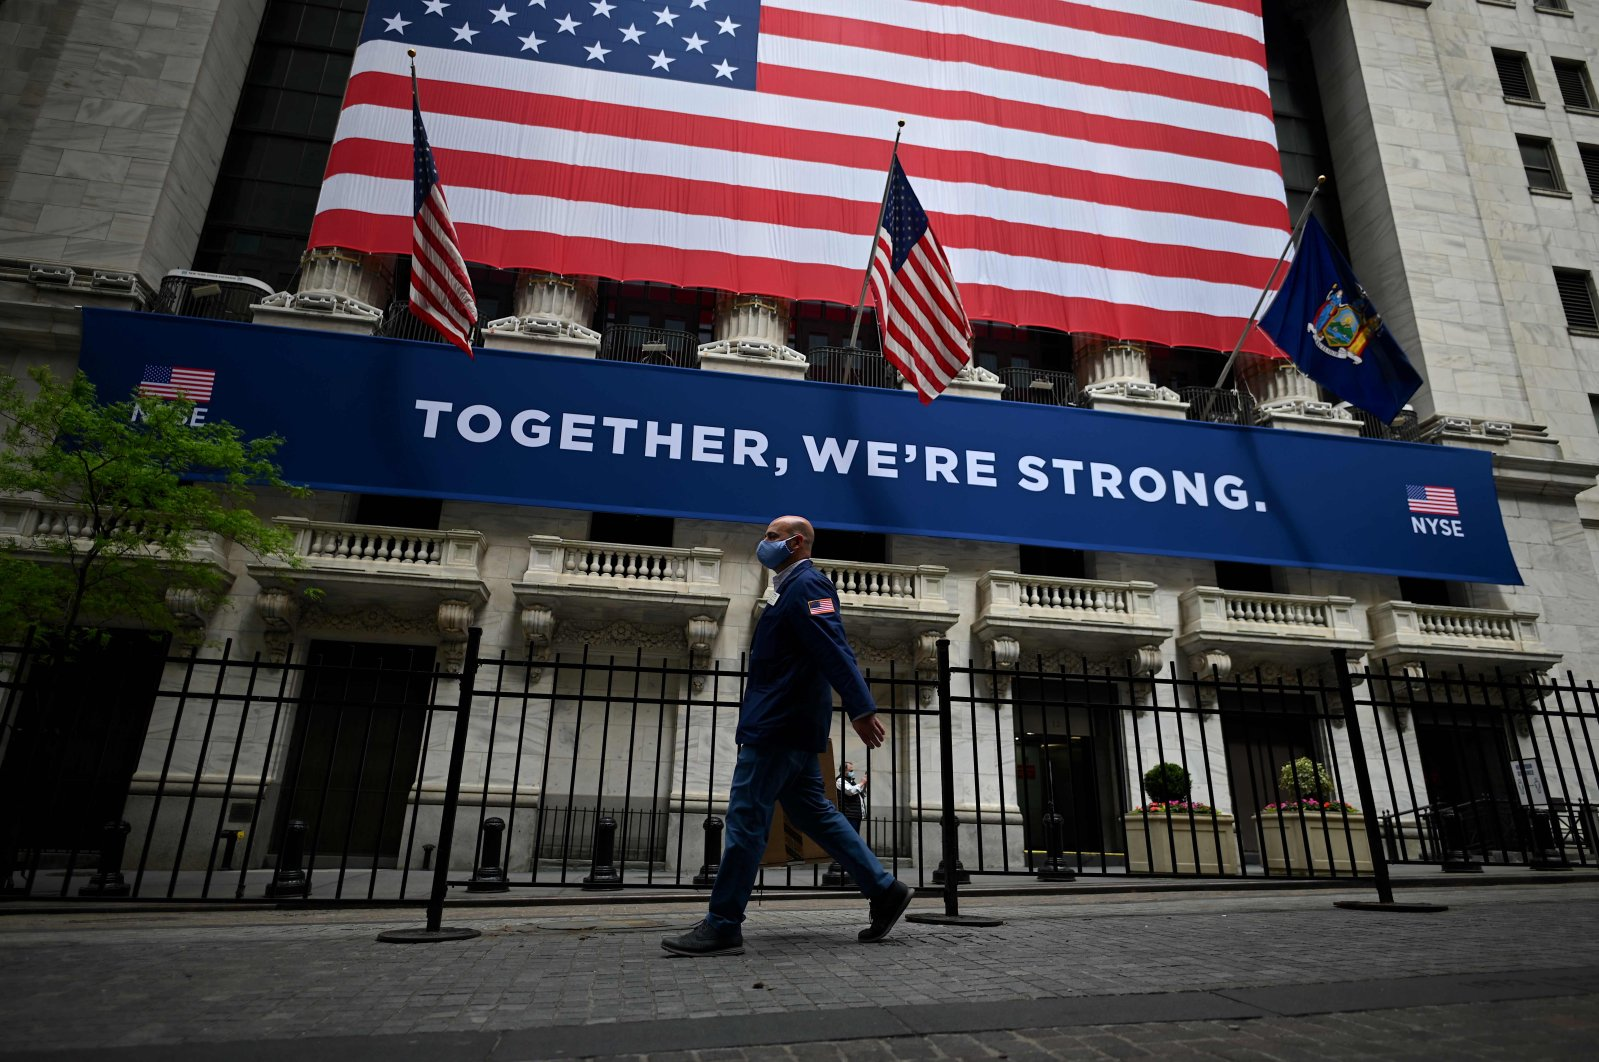 The New York Stock Exchange (NYSE) is pictured on May 26, 2020 at Wall Street in New York City. (AFP Photo)